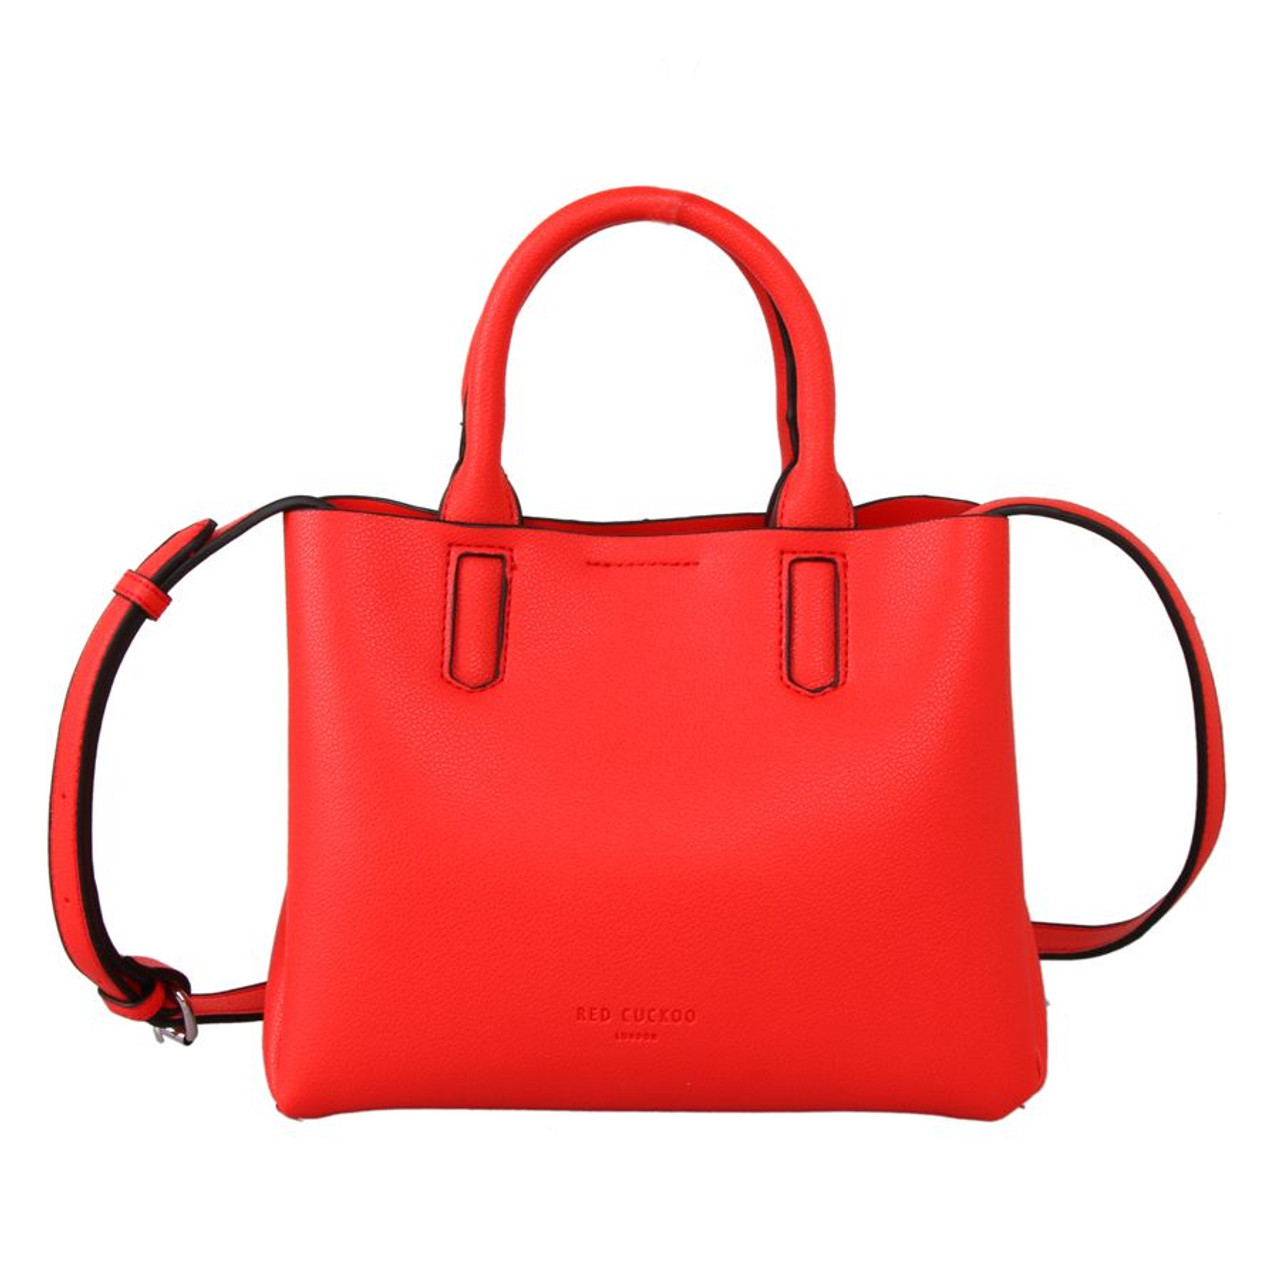 1f2d43154b916 Red Cuckoo Grab Bag in Coral - Itsy Bitsy Boutique